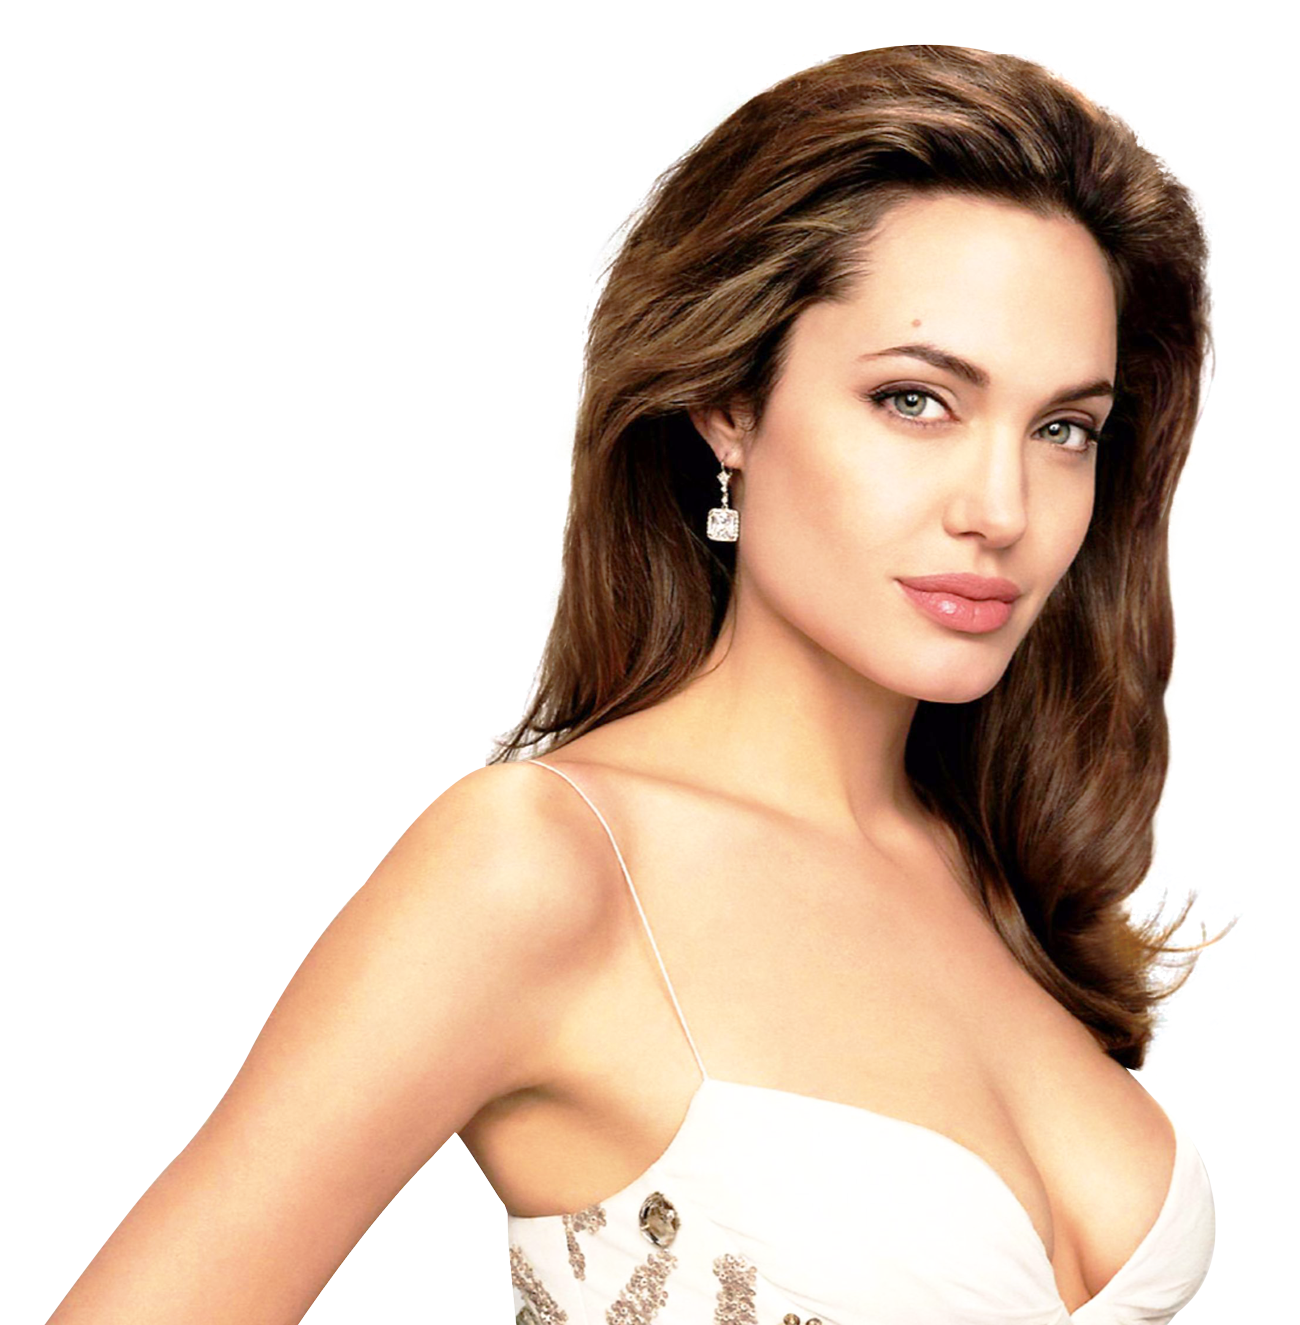 Download For Free Angelina Jolie PNG Cli-Download for free Angelina Jolie PNG Clipart-16